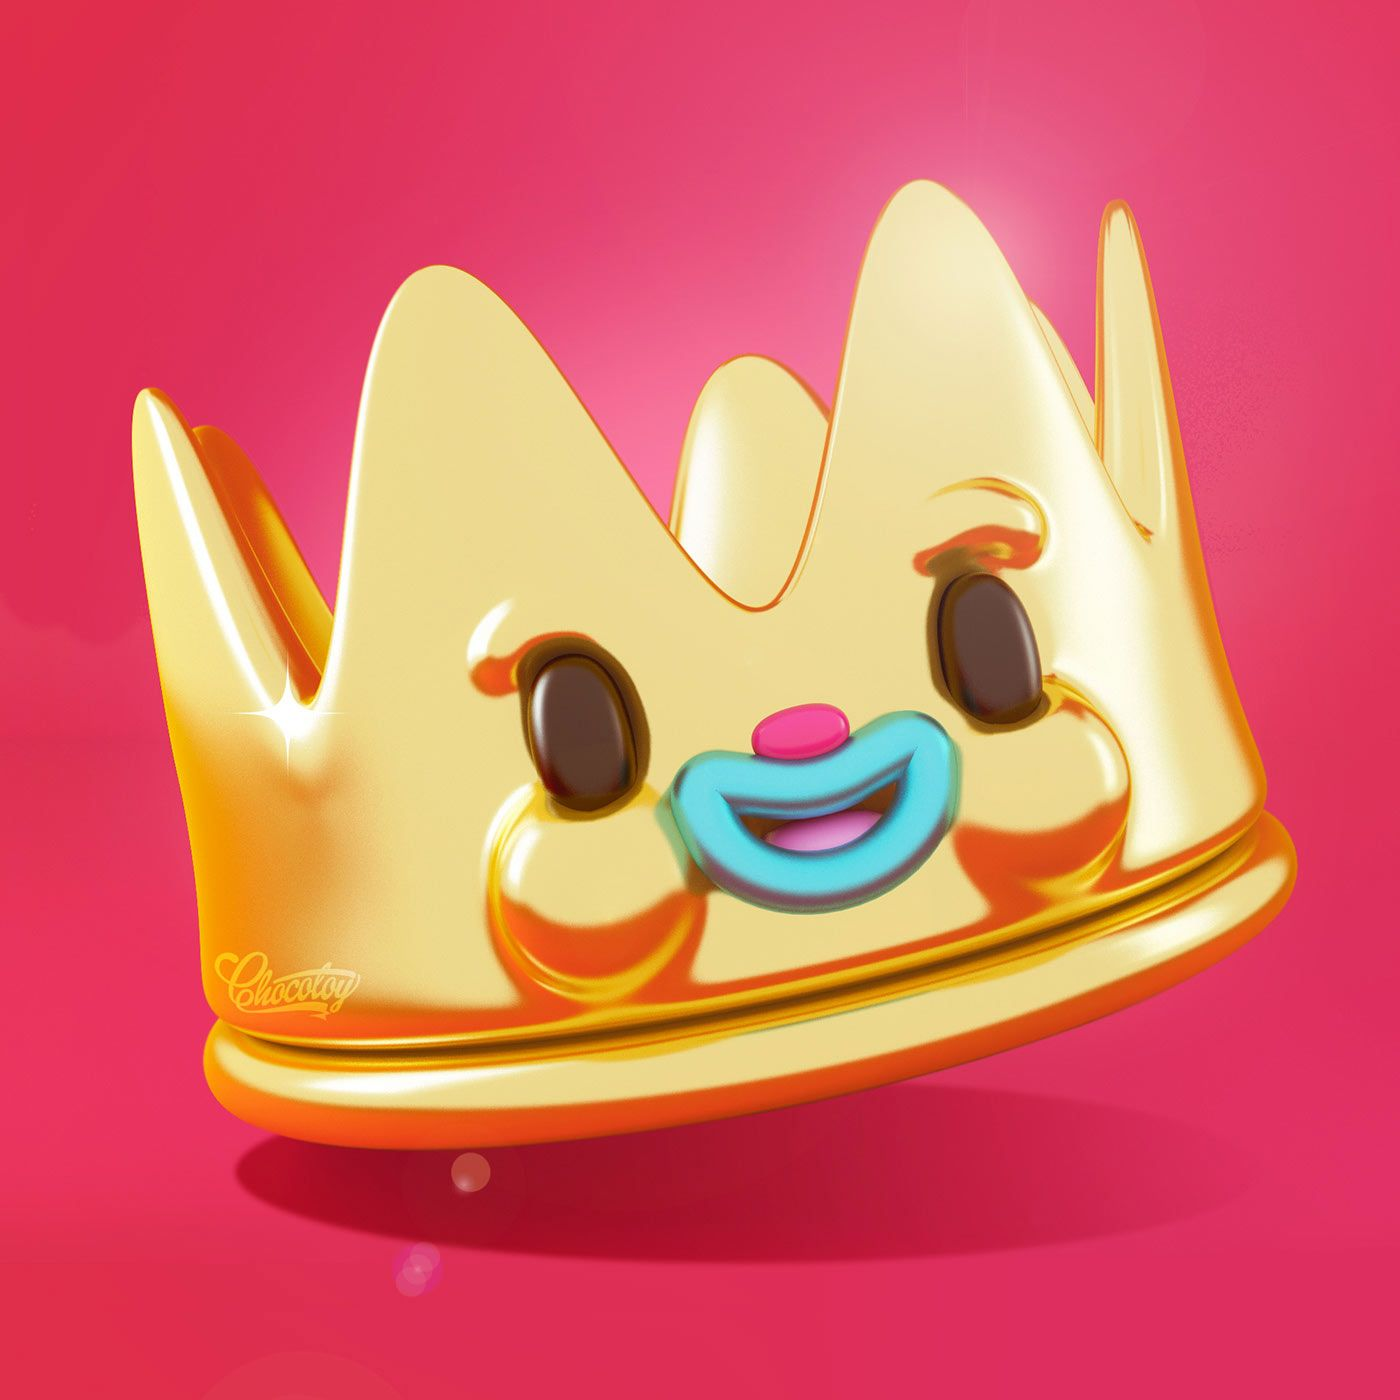 Funny & Amazing 3D Character Design by ChocoToy Cute   HeyDesign Graphic Design & Typography Inspiration